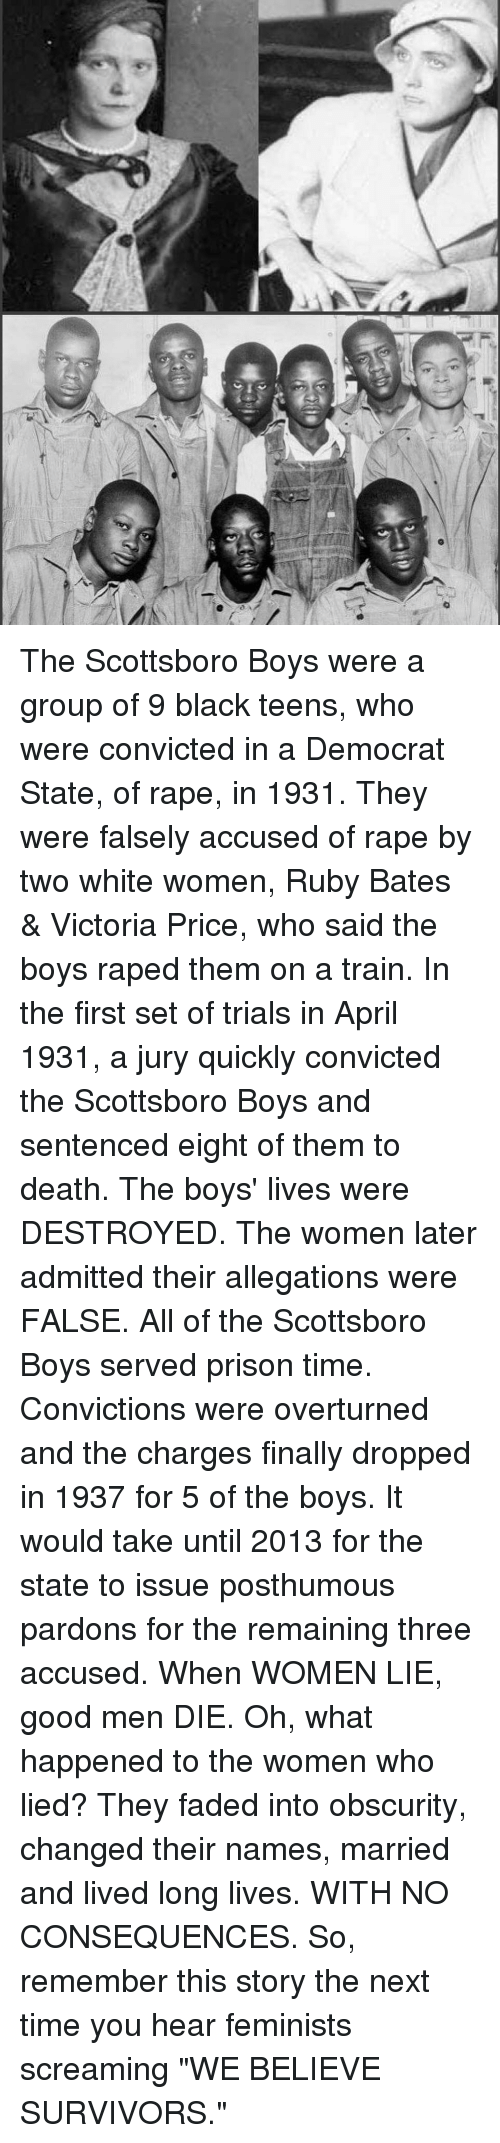 "Memes, Faded, and Prison: The Scottsboro Boys were a group of 9 black teens, who were convicted in a Democrat State, of rape, in 1931. They were falsely accused of rape by two white women, Ruby Bates & Victoria Price, who said the boys raped them on a train. In the first set of trials in April 1931, a jury quickly convicted the Scottsboro Boys and sentenced eight of them to death. The boys' lives were DESTROYED. The women later admitted their allegations were FALSE. All of the Scottsboro Boys served prison time. Convictions were overturned and the charges finally dropped in 1937 for 5 of the boys. It would take until 2013 for the state to issue posthumous pardons for the remaining three accused. When WOMEN LIE, good men DIE. Oh, what happened to the women who lied? They faded into obscurity, changed their names, married and lived long lives. WITH NO CONSEQUENCES. So, remember this story the next time you hear feminists screaming ""WE BELIEVE SURVIVORS."""